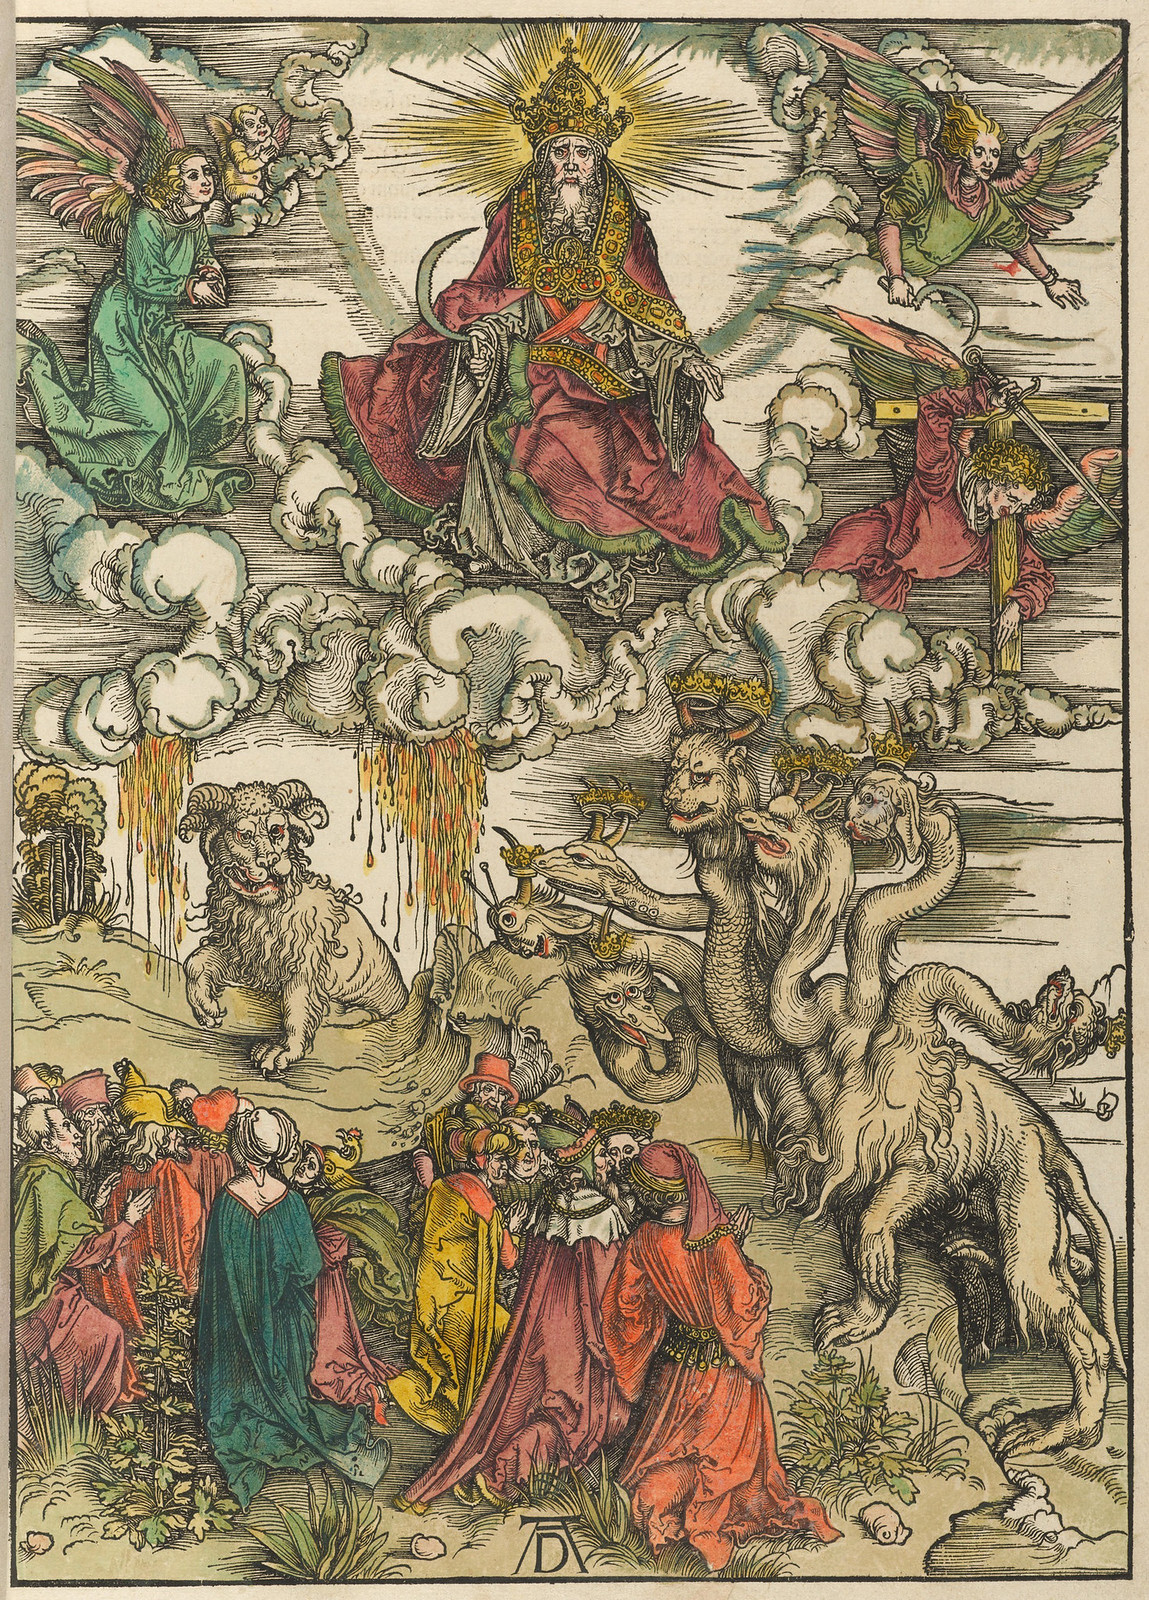 Albrecht Dürer - Beast with two horns like a lamb, Plate twelve of fifteen from the Latin edition of The Apocalypse series, hand colored,  printed 1511